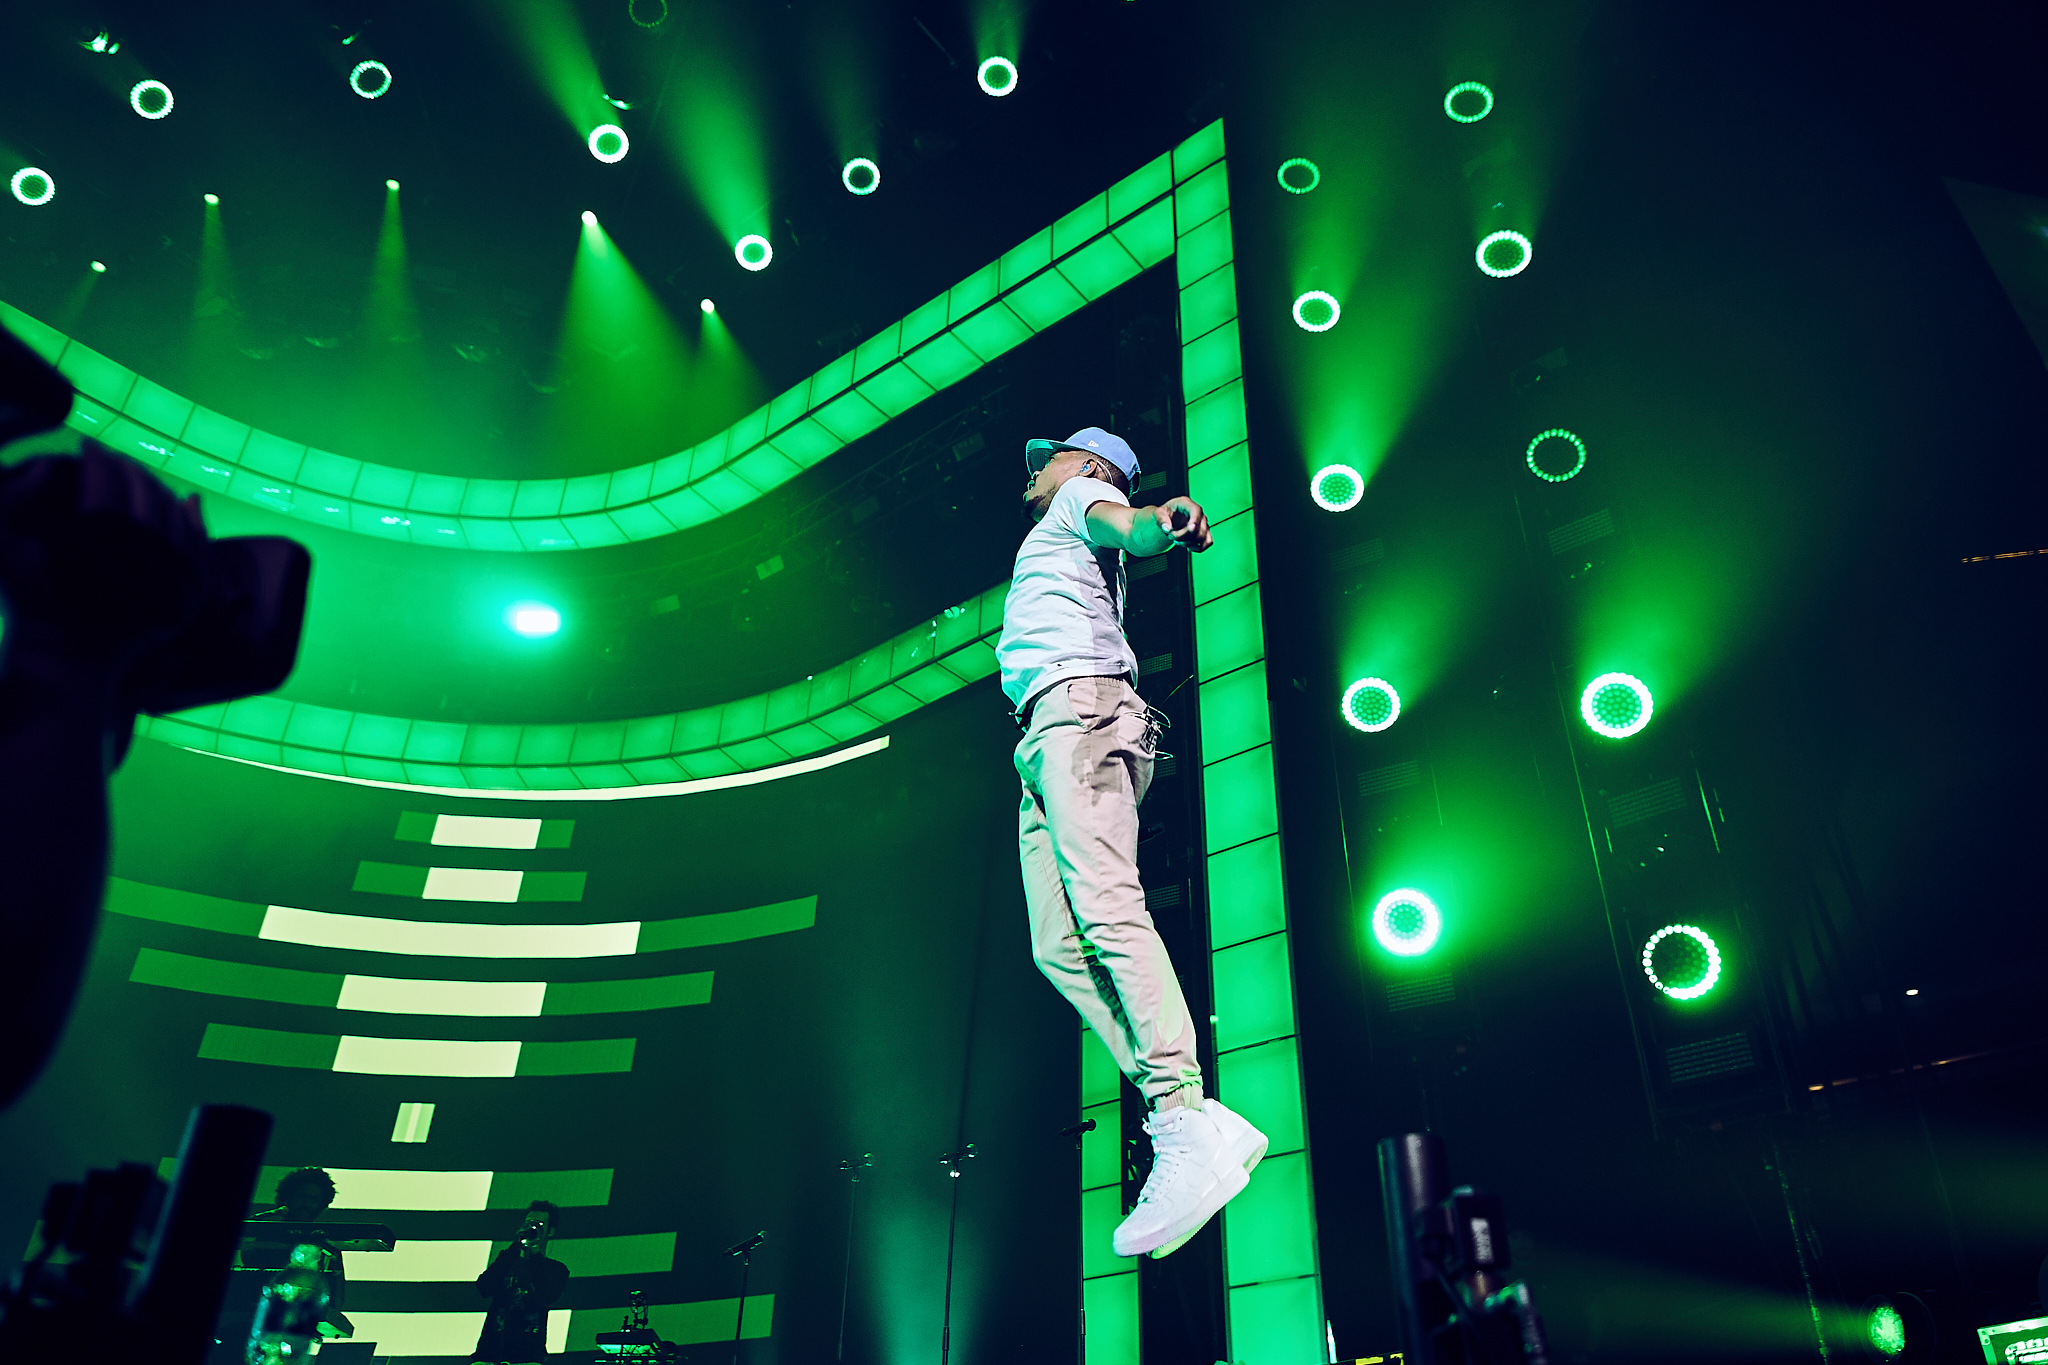 Chance_The_Rapper_At_Xcel_Energy_Center_05-12-2017_Photo_by_Joe_Lemke_026.jpg